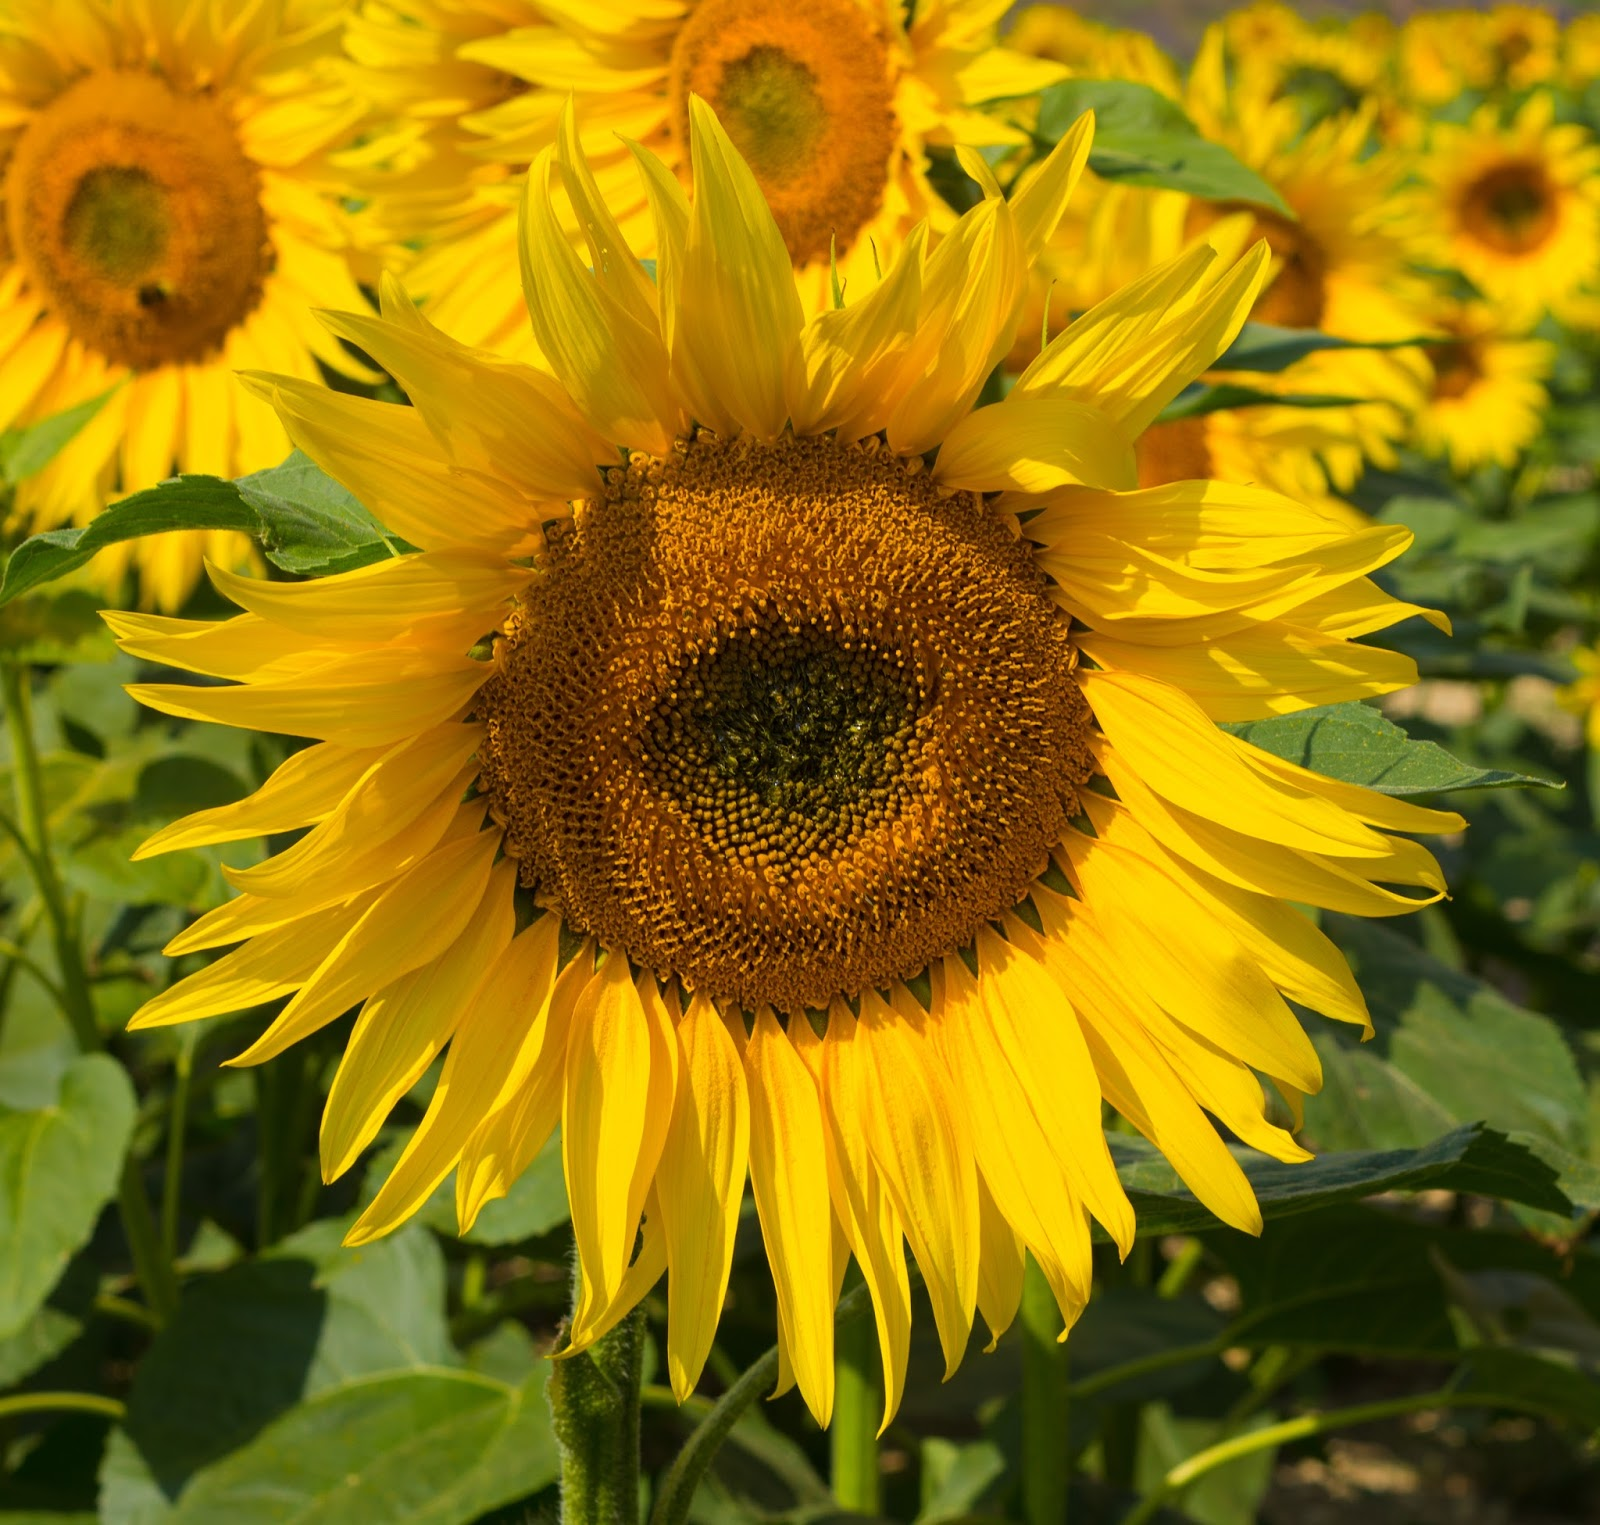 A close up of a bright yellow sunflower with more sunflowers in the background